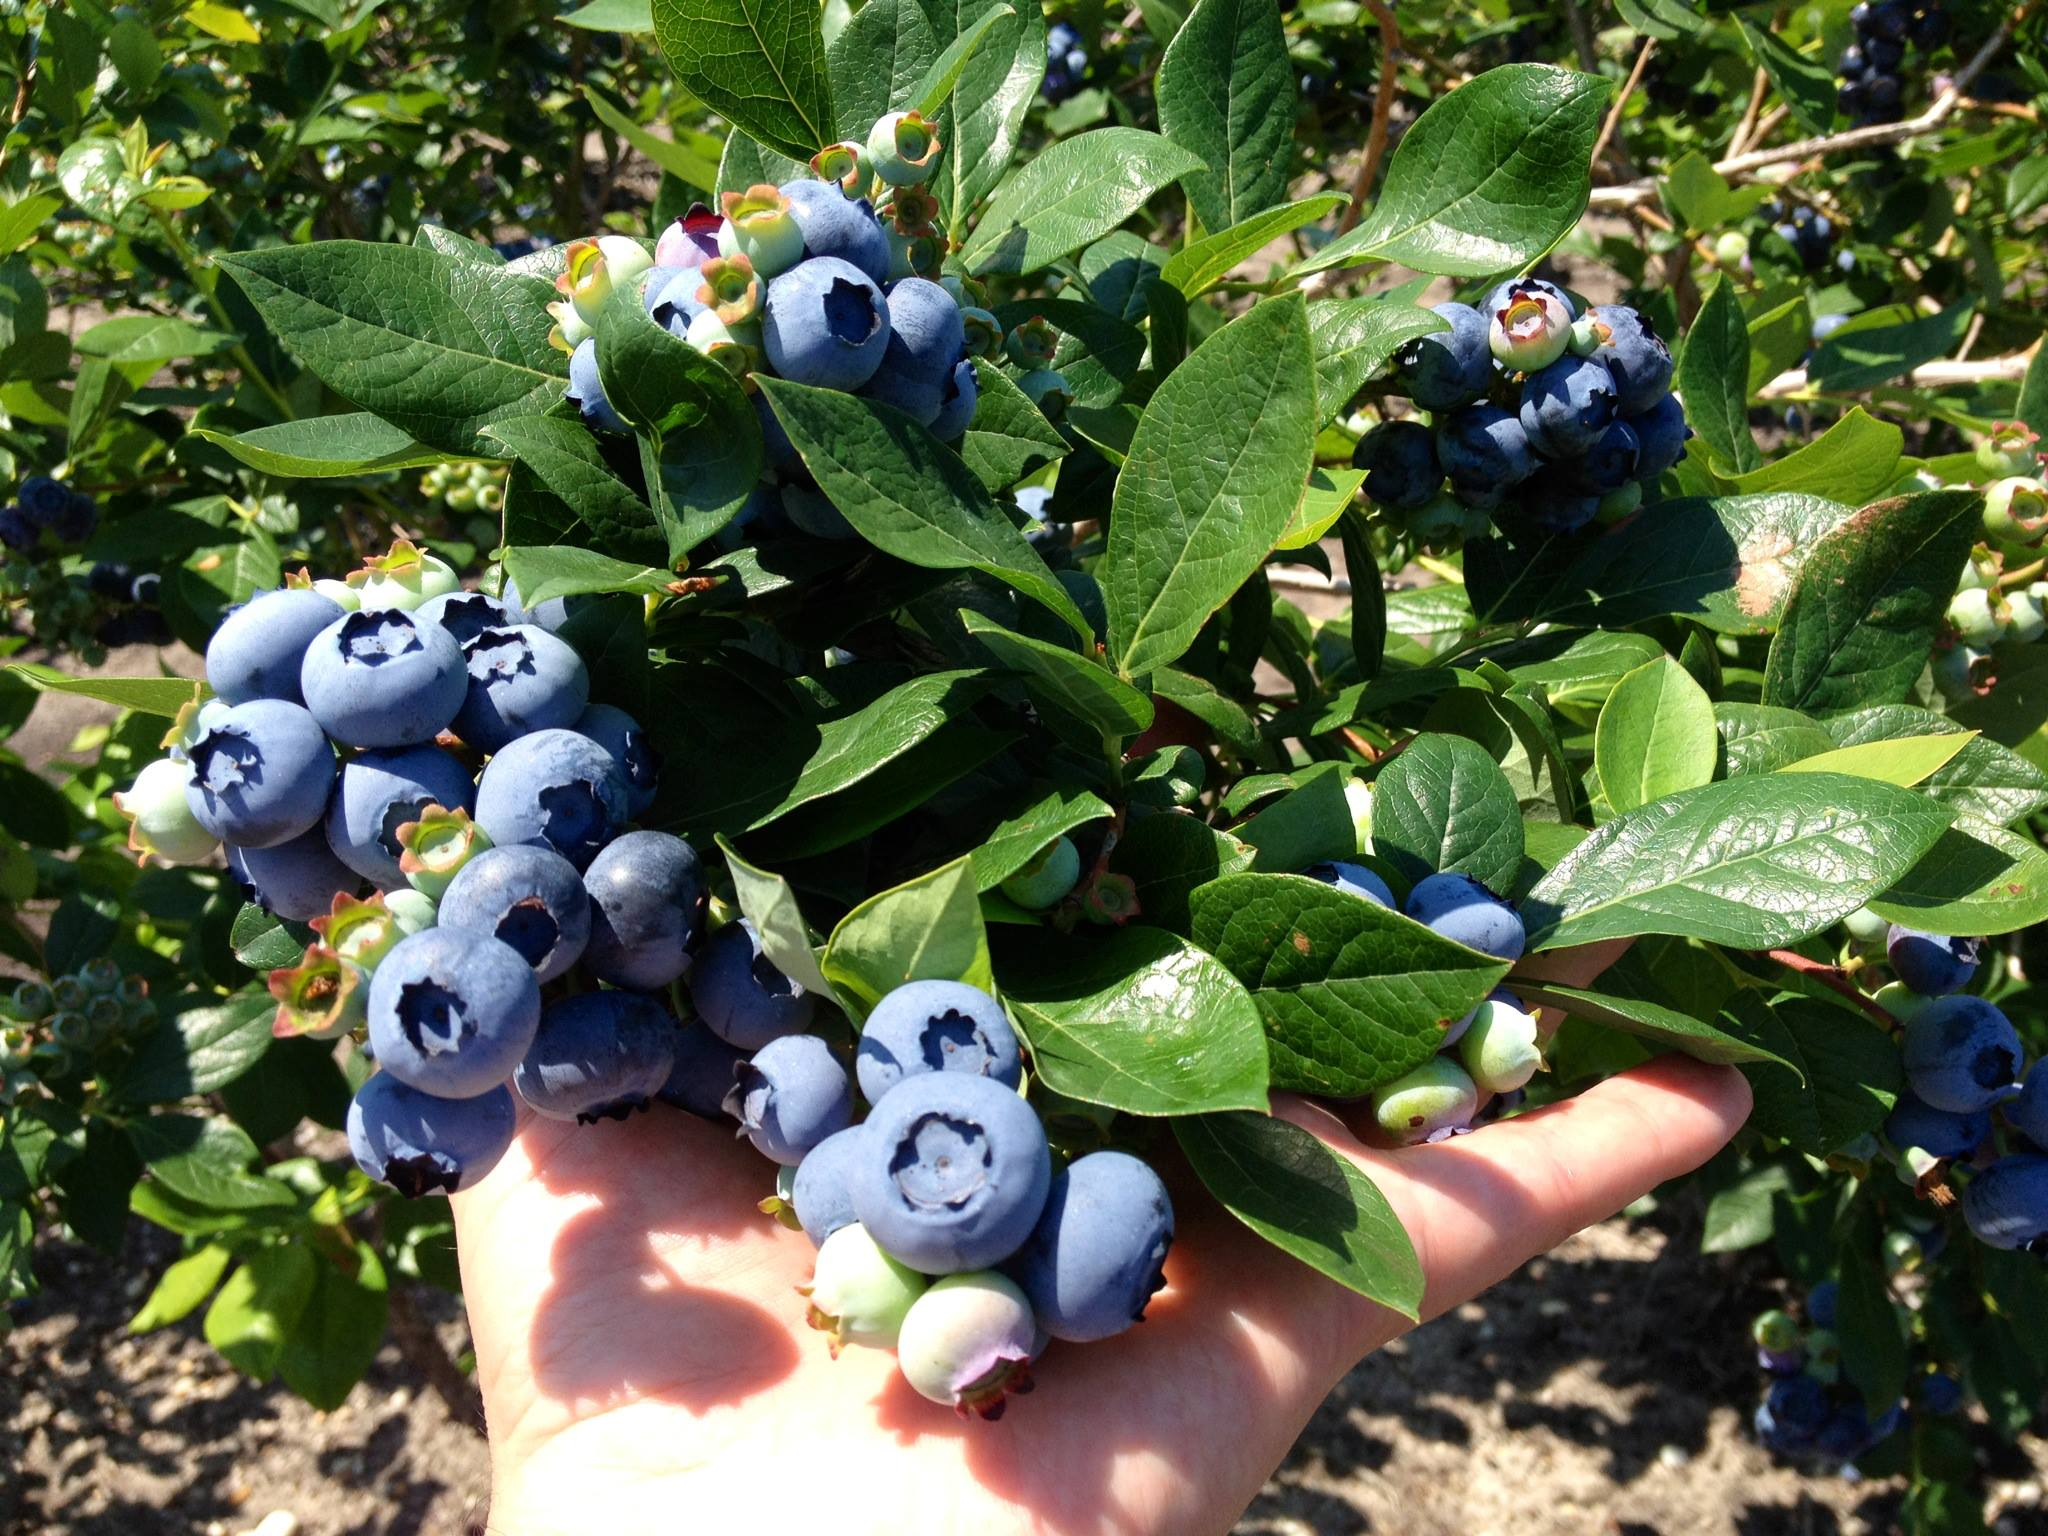 Blueberry Plants Blueberry Plants For Sale Blueberry Bushes